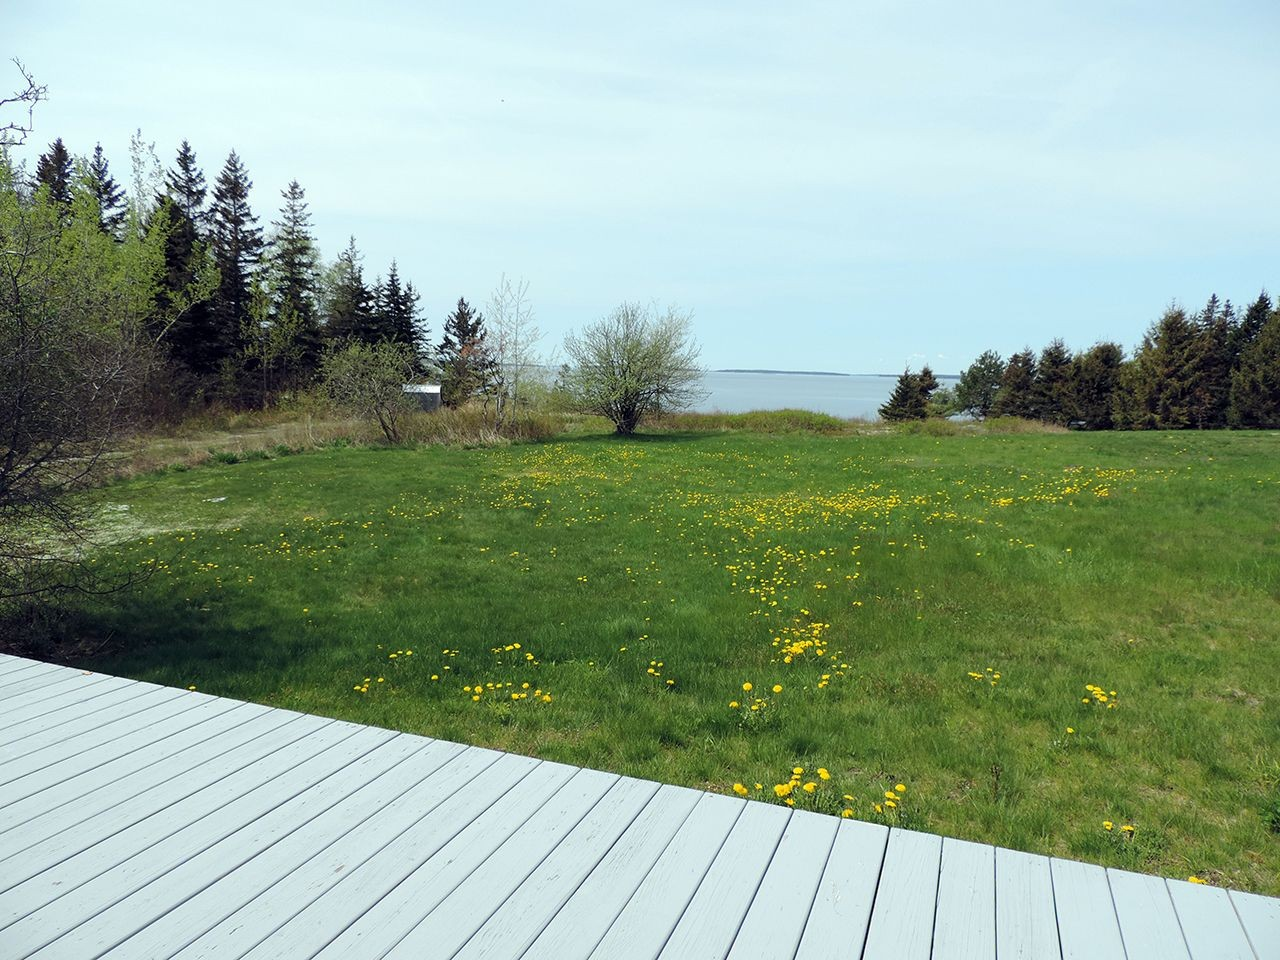 walker s meadow a luxury single family home for sale in tremont, maine property id 379300722 christie s international real estate